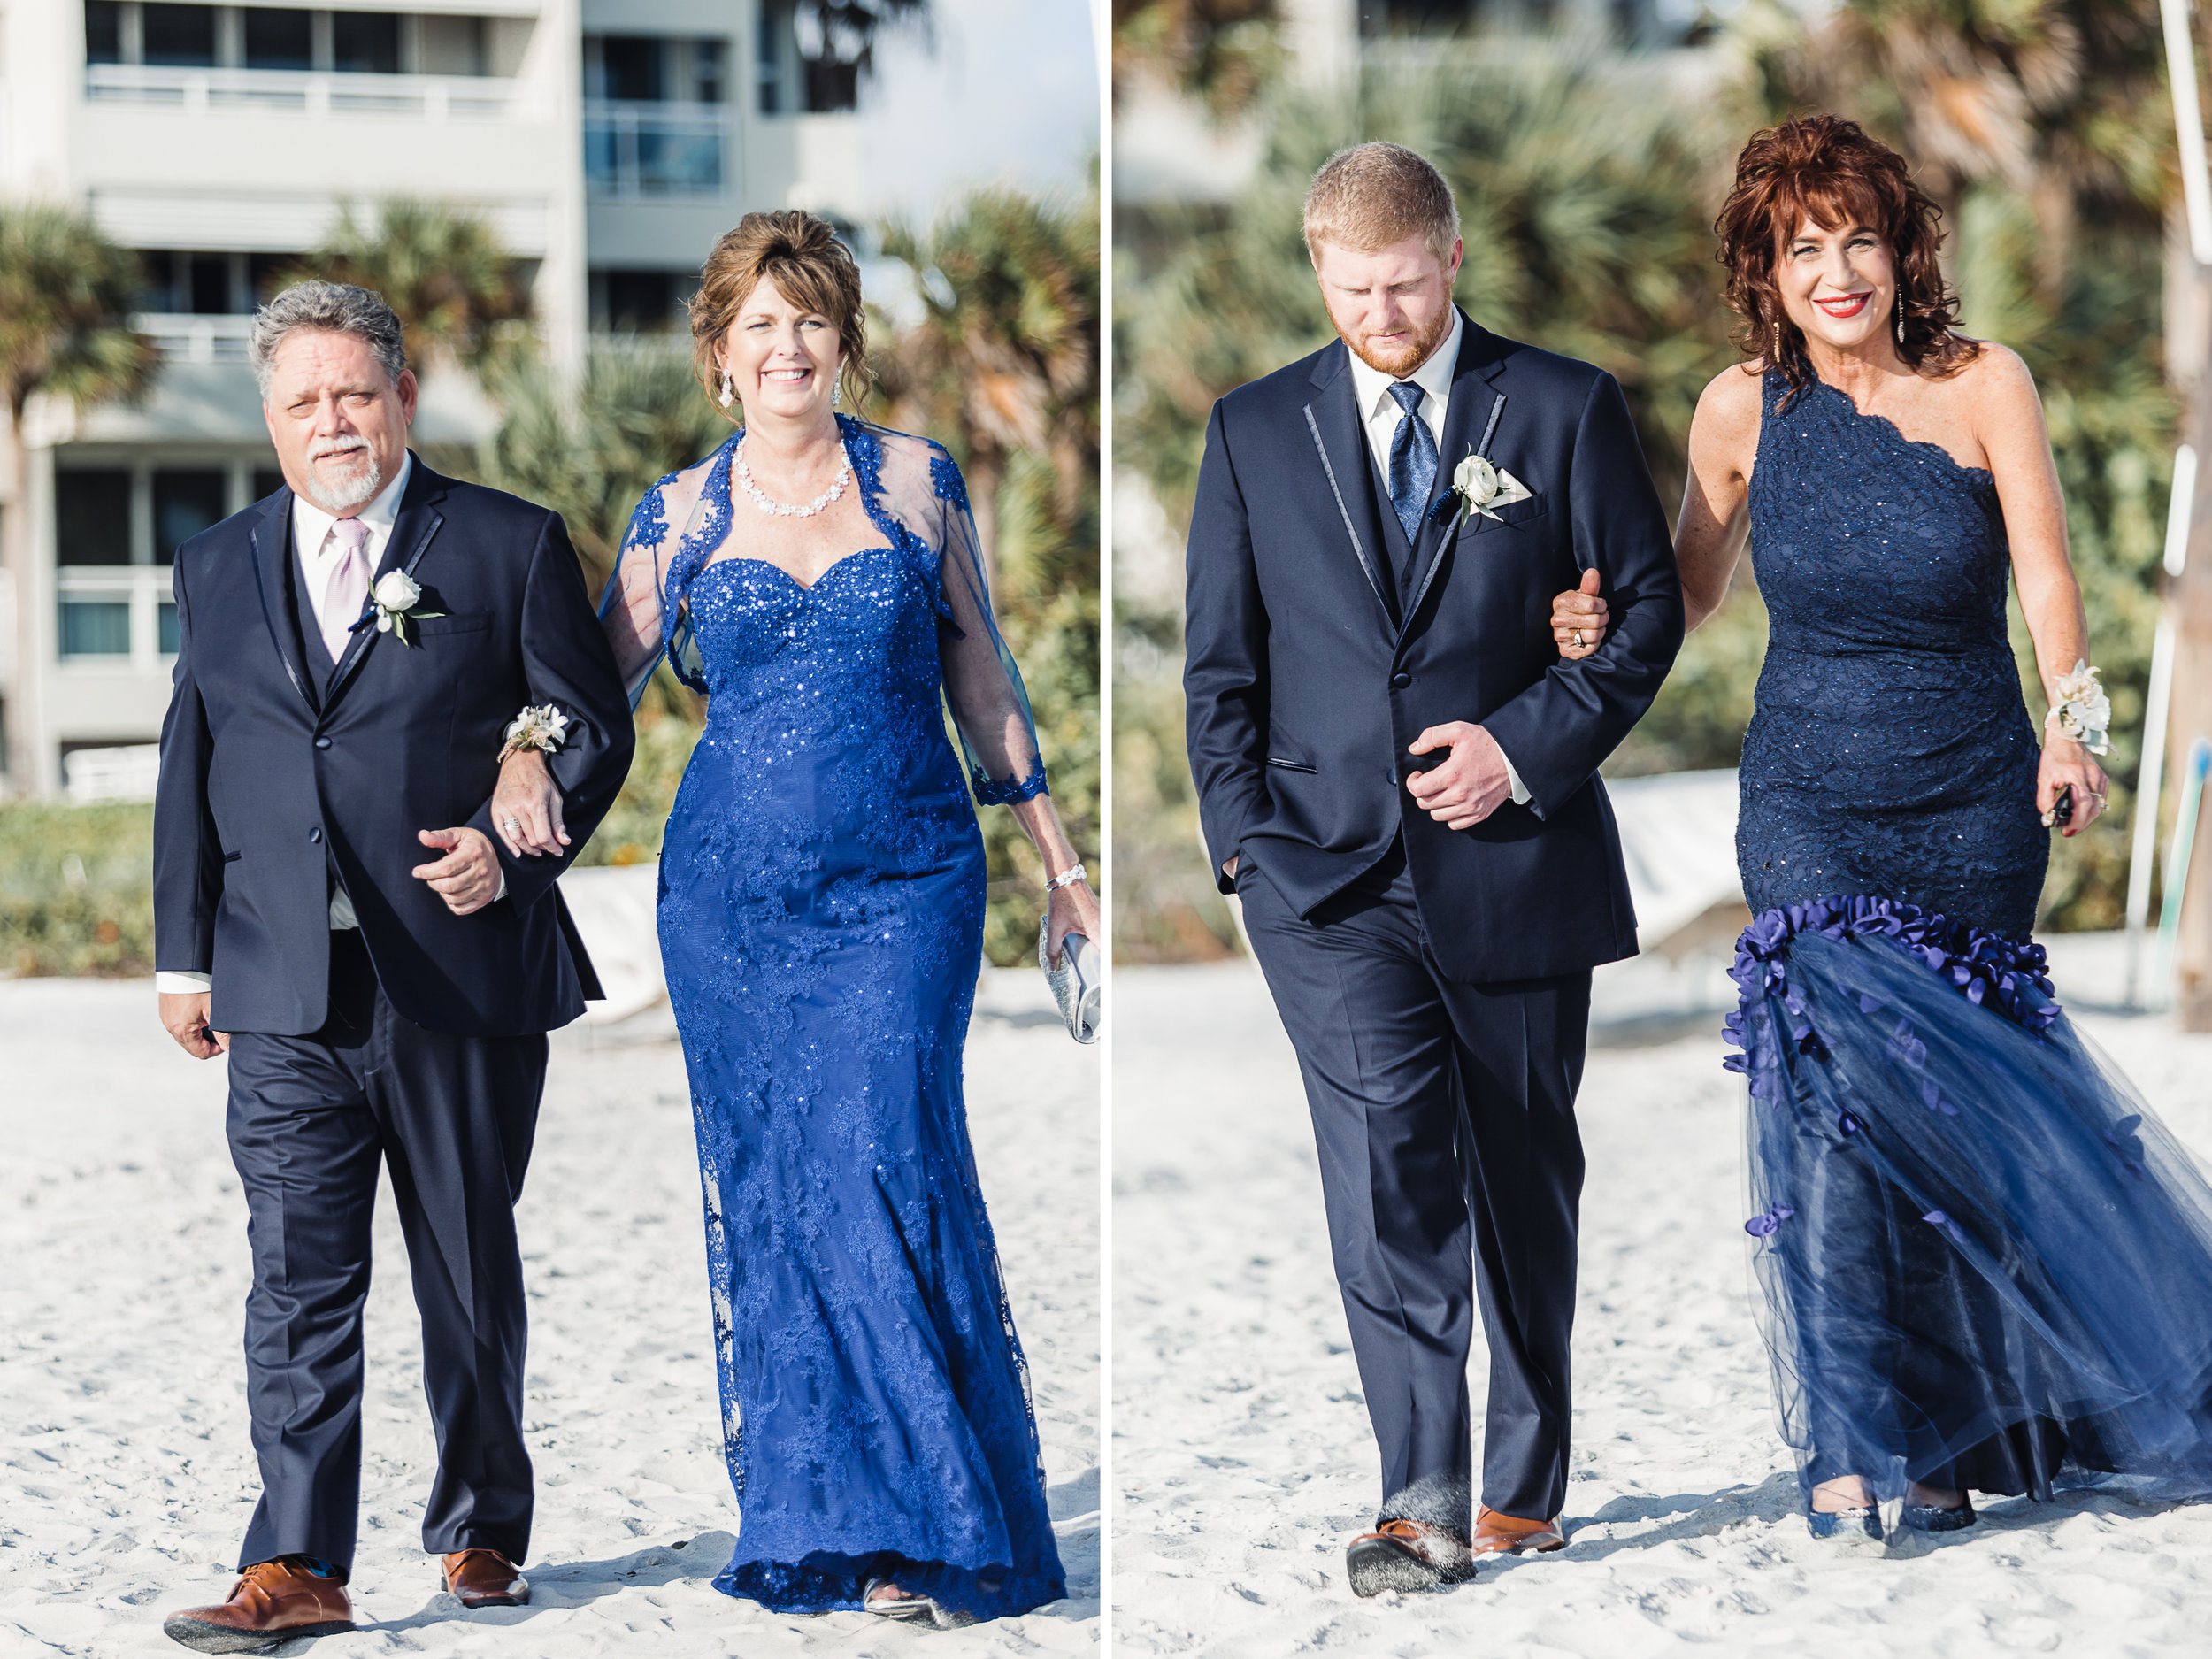 Longboat Key Club Mothers of the groom and bride dresses navy blue-1.jpg